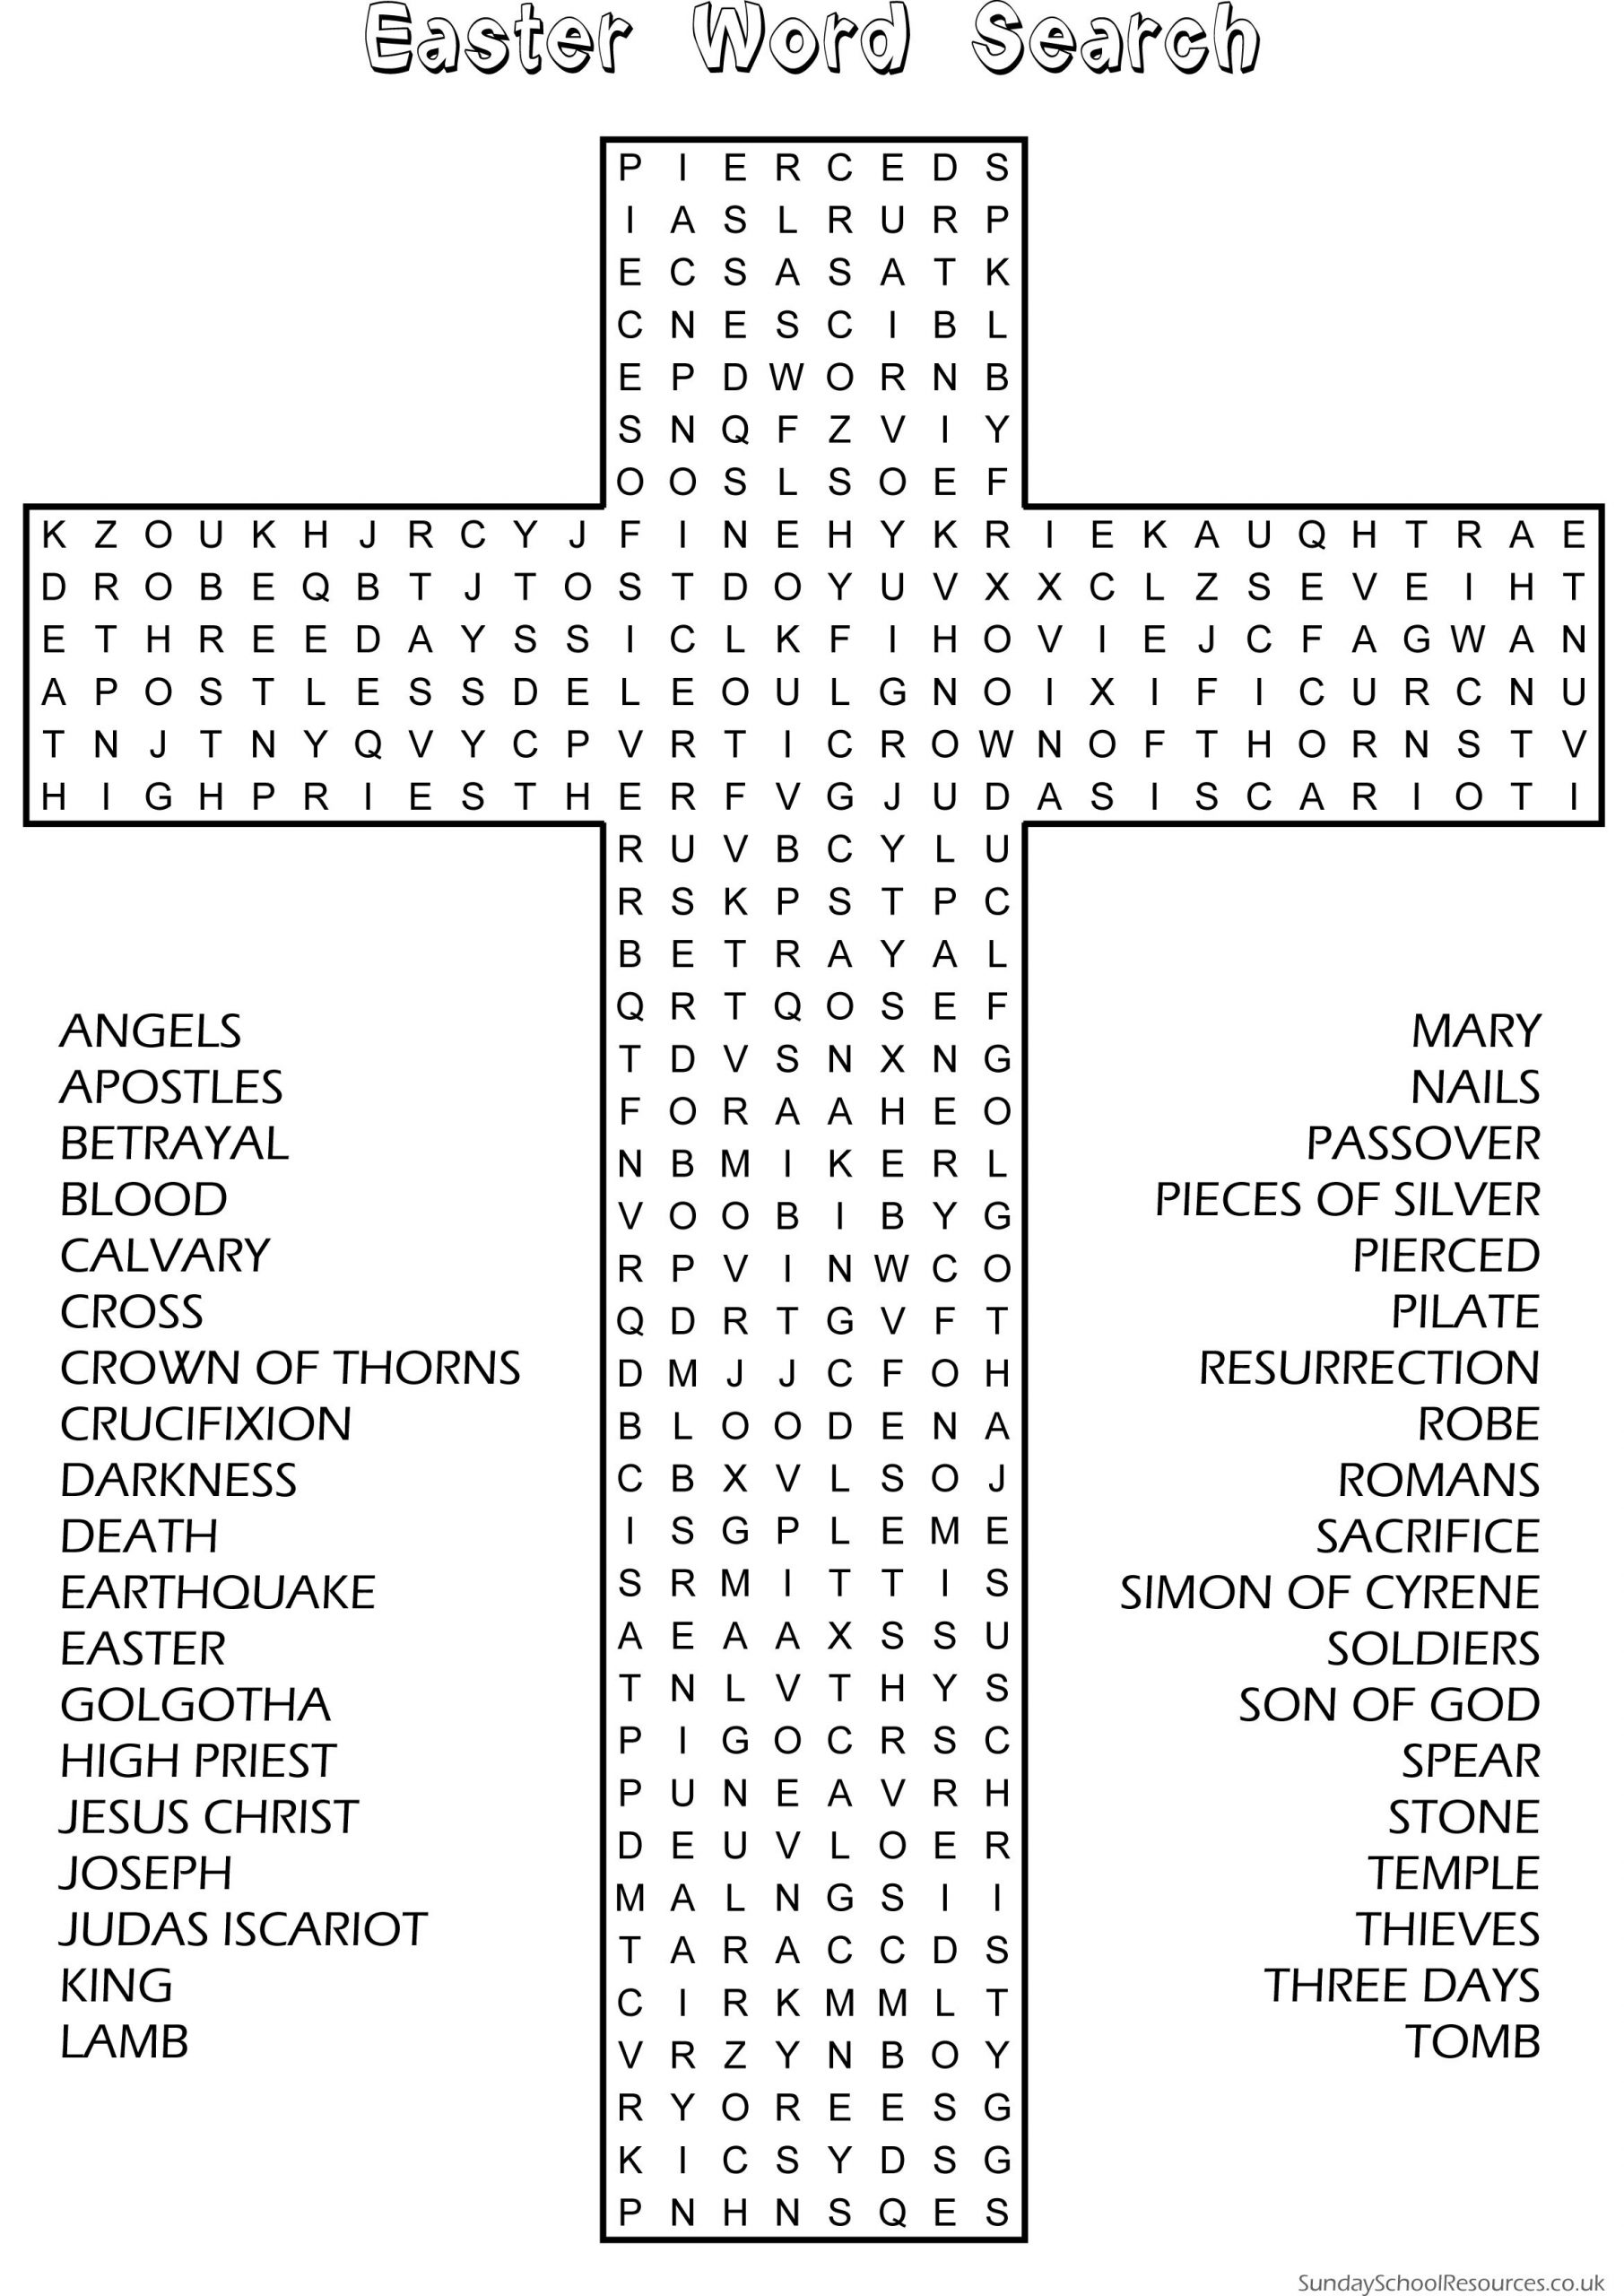 Easter Word Search - Sunday School Activity Website Has Good